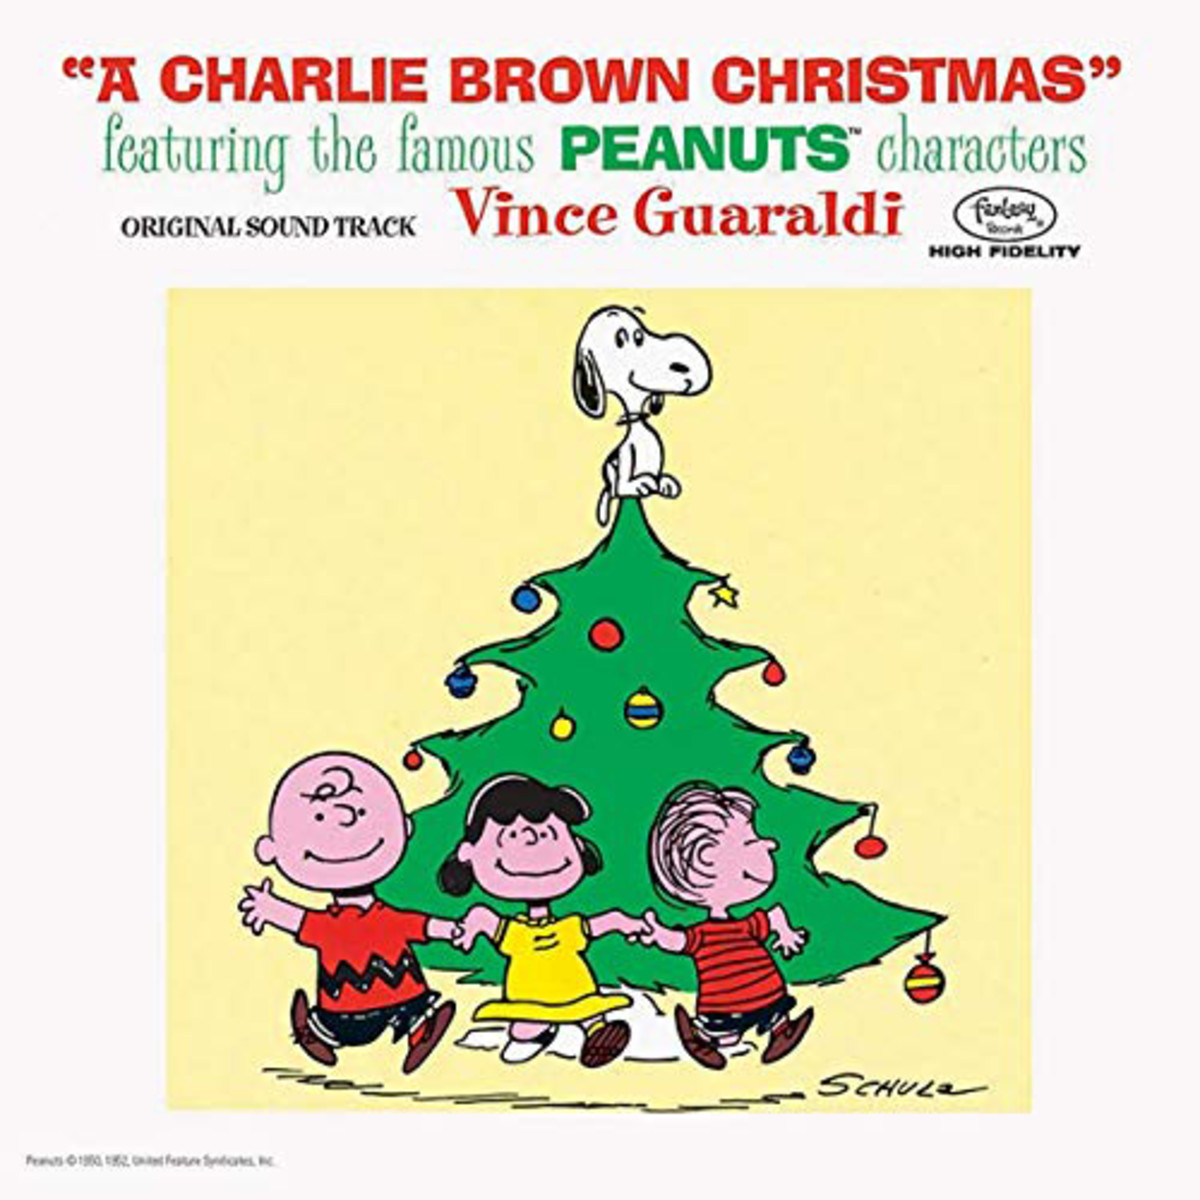 Craft Recordings'A Charlie Brown Christmas is full of classics by the Vince Guaraldi Trio.